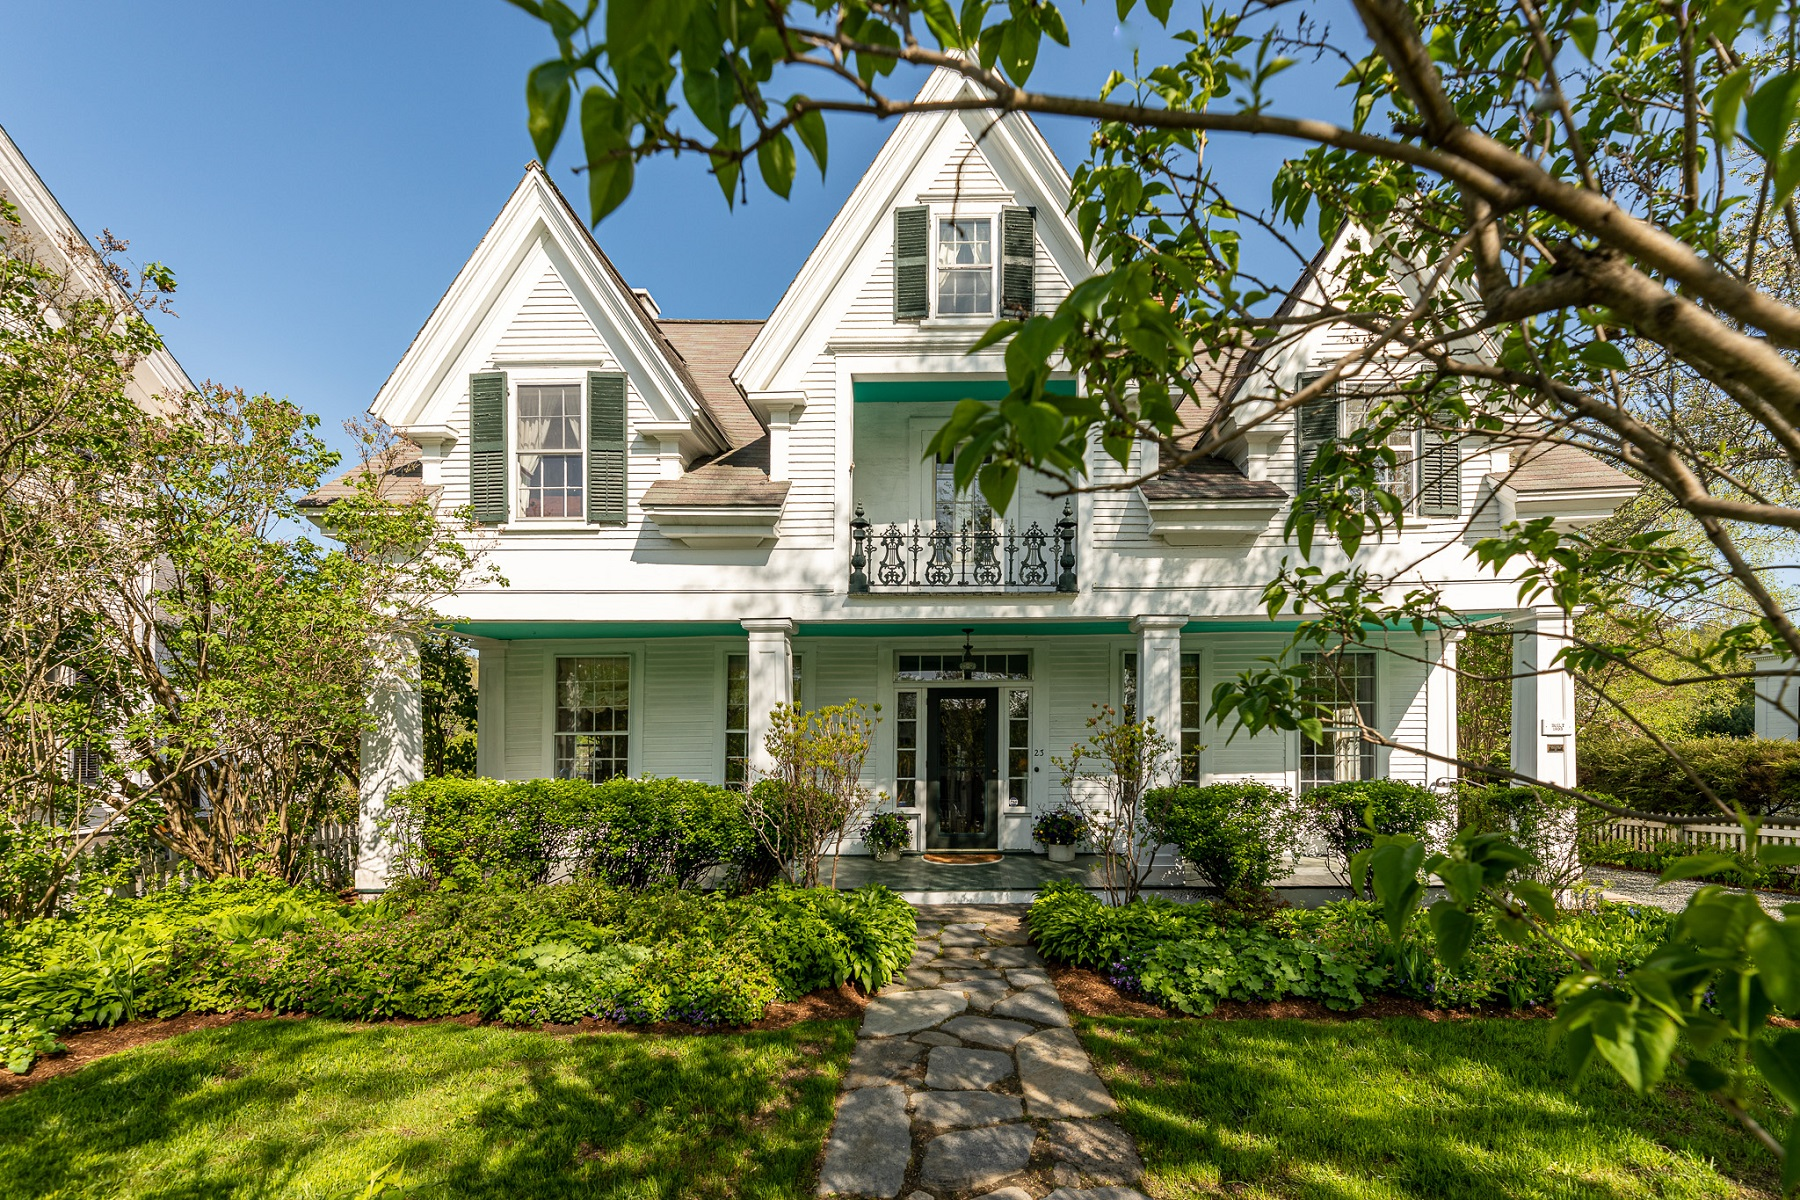 Single Family Homes for Sale at Gracious Circa 1803 Home 23 The Green Woodstock, Vermont 05091 United States